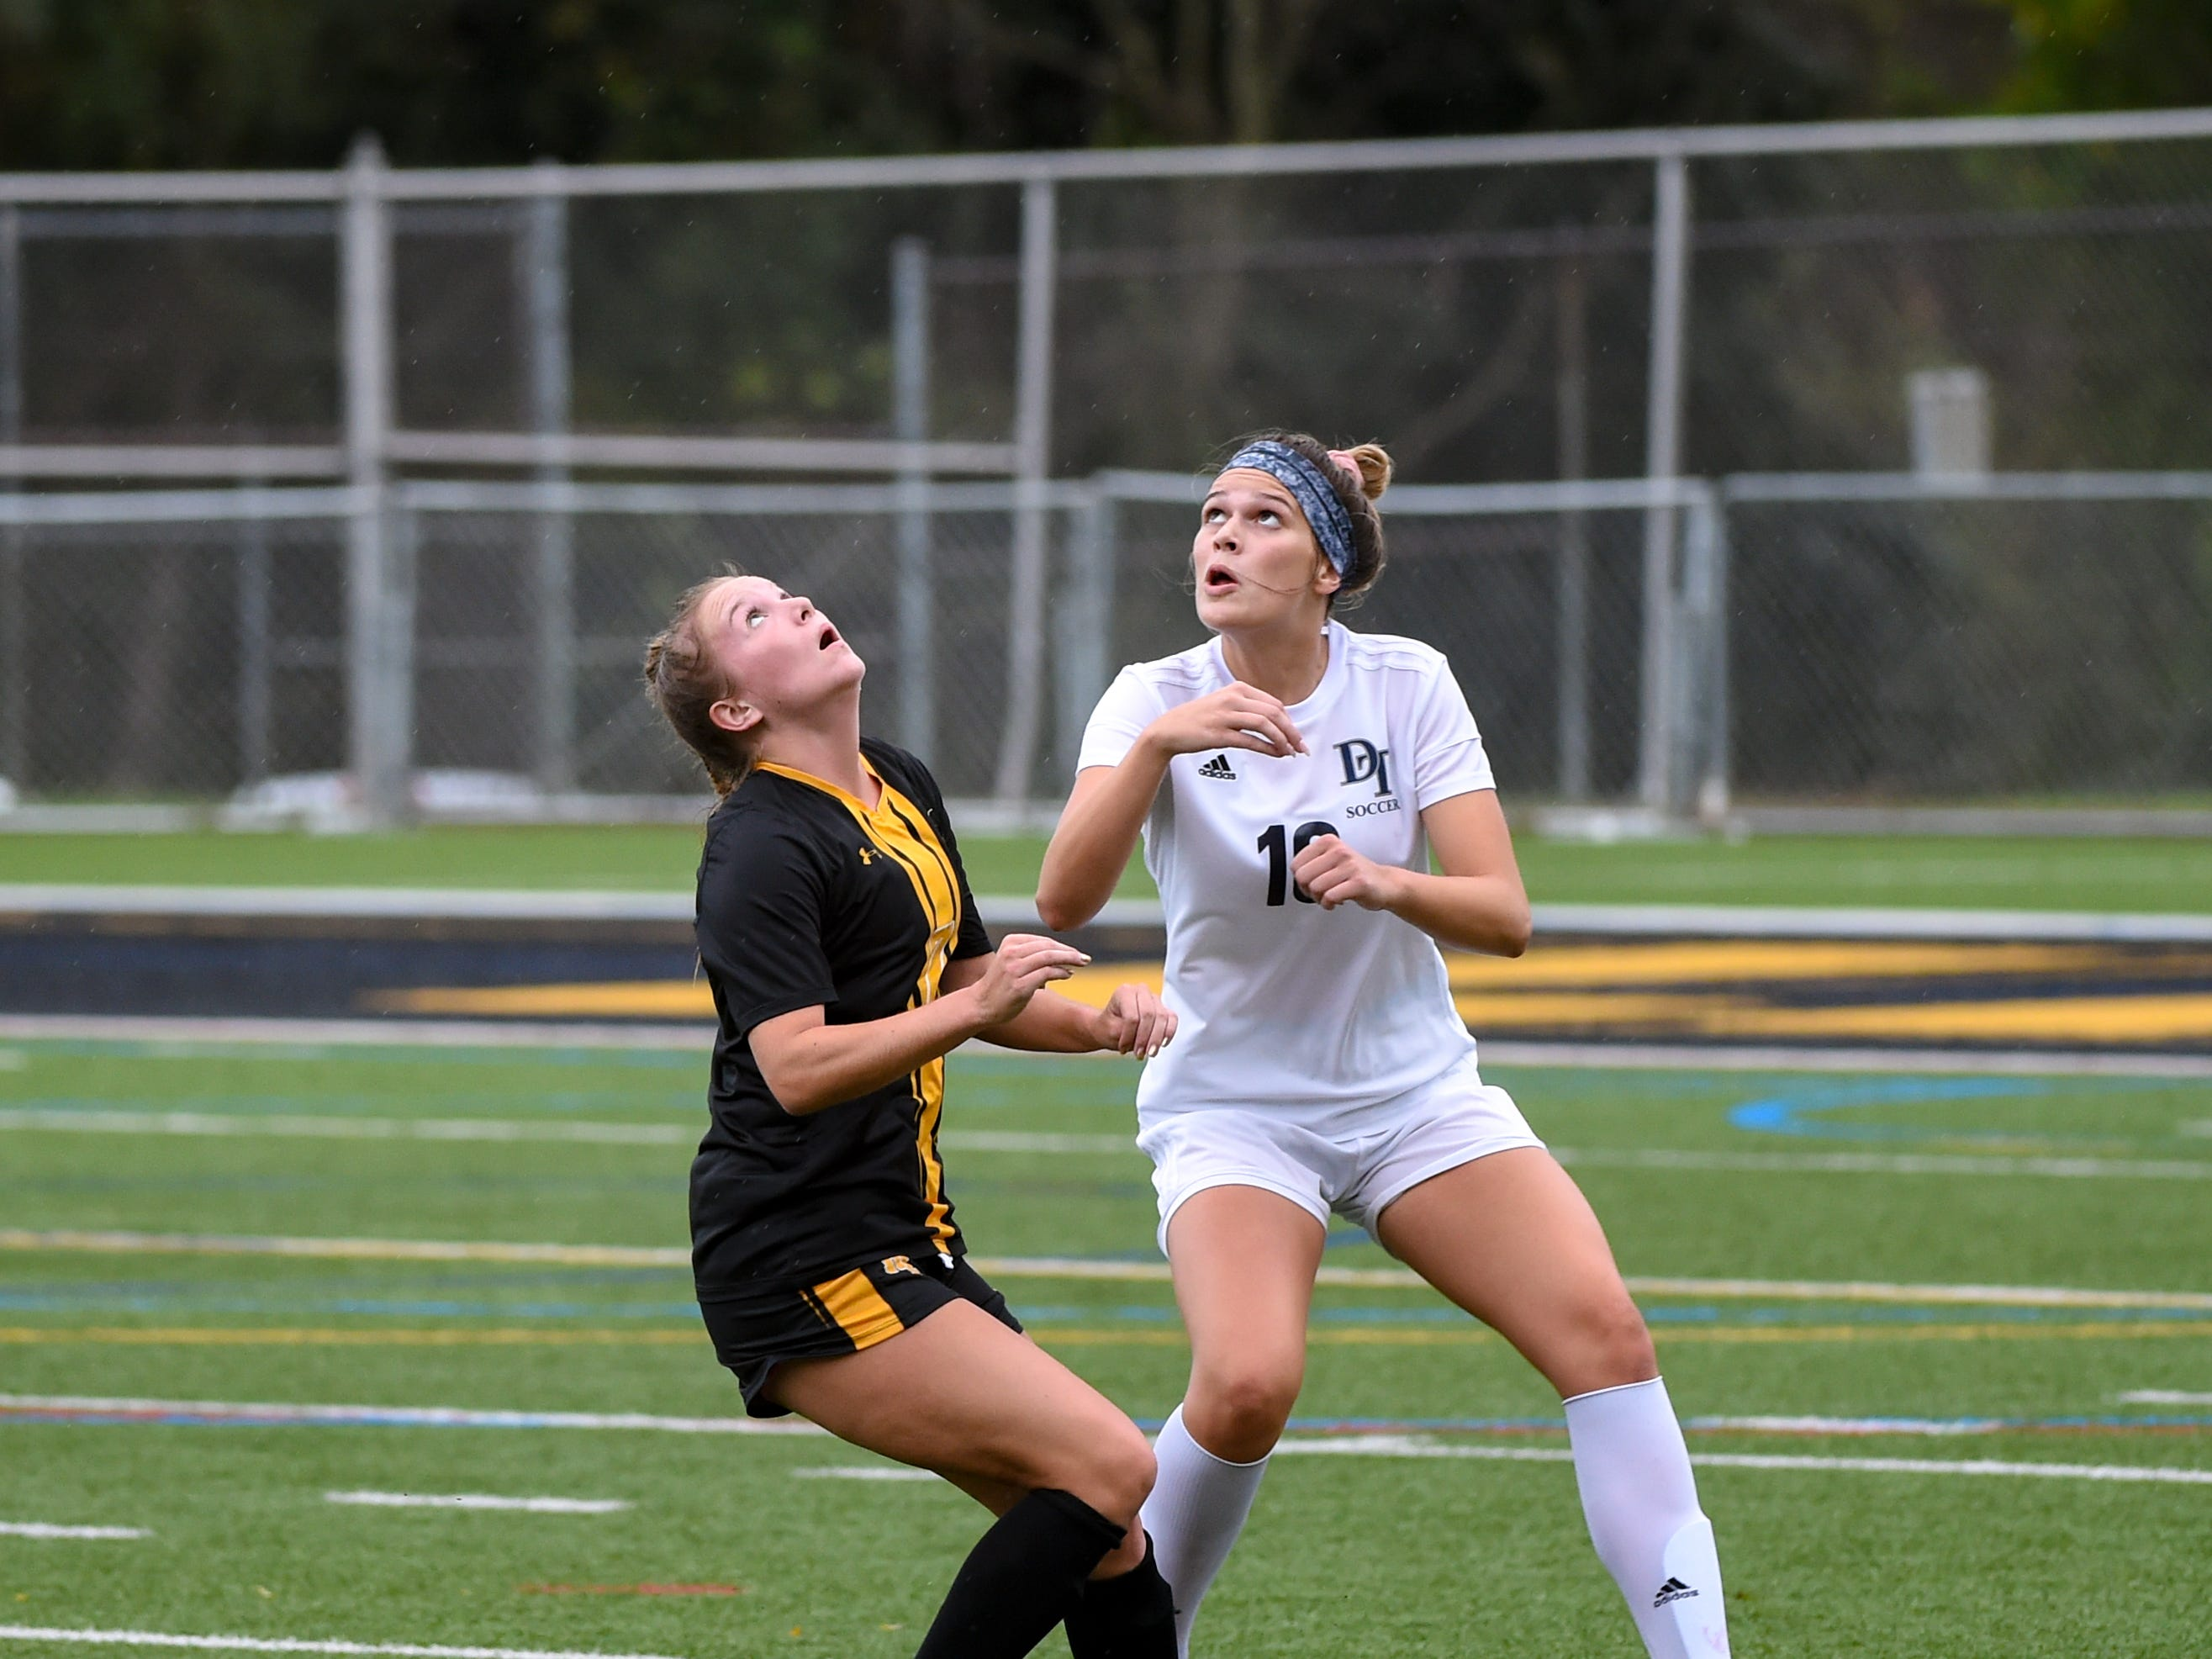 Dallastown's Brynn Darr (10), right, and Red Lion's Lexis Kline (7), left, look to win the header, October 11, 2018. The Lady Lions beat the Wildcats 4-0.